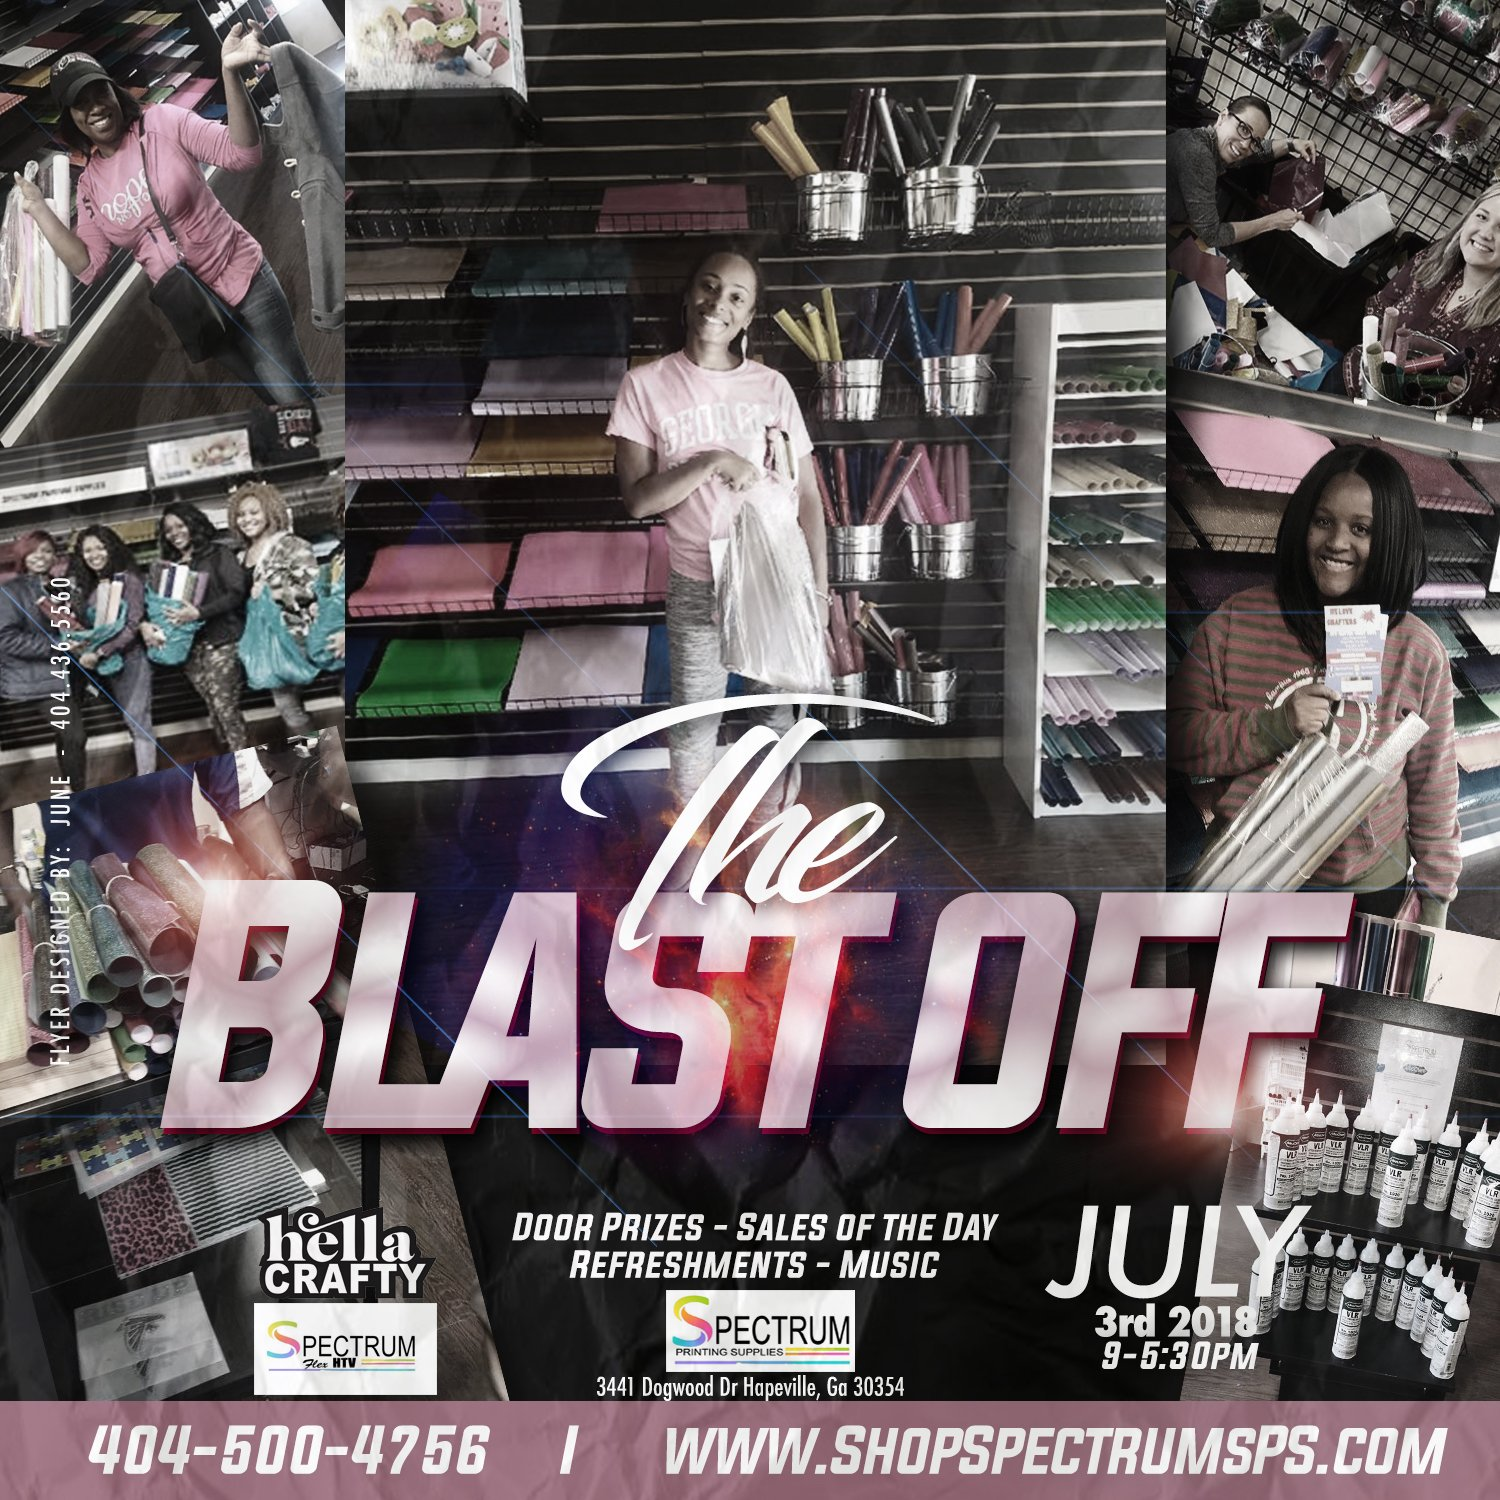 The Blast Off Spectrum Printing Supplies July 3rd